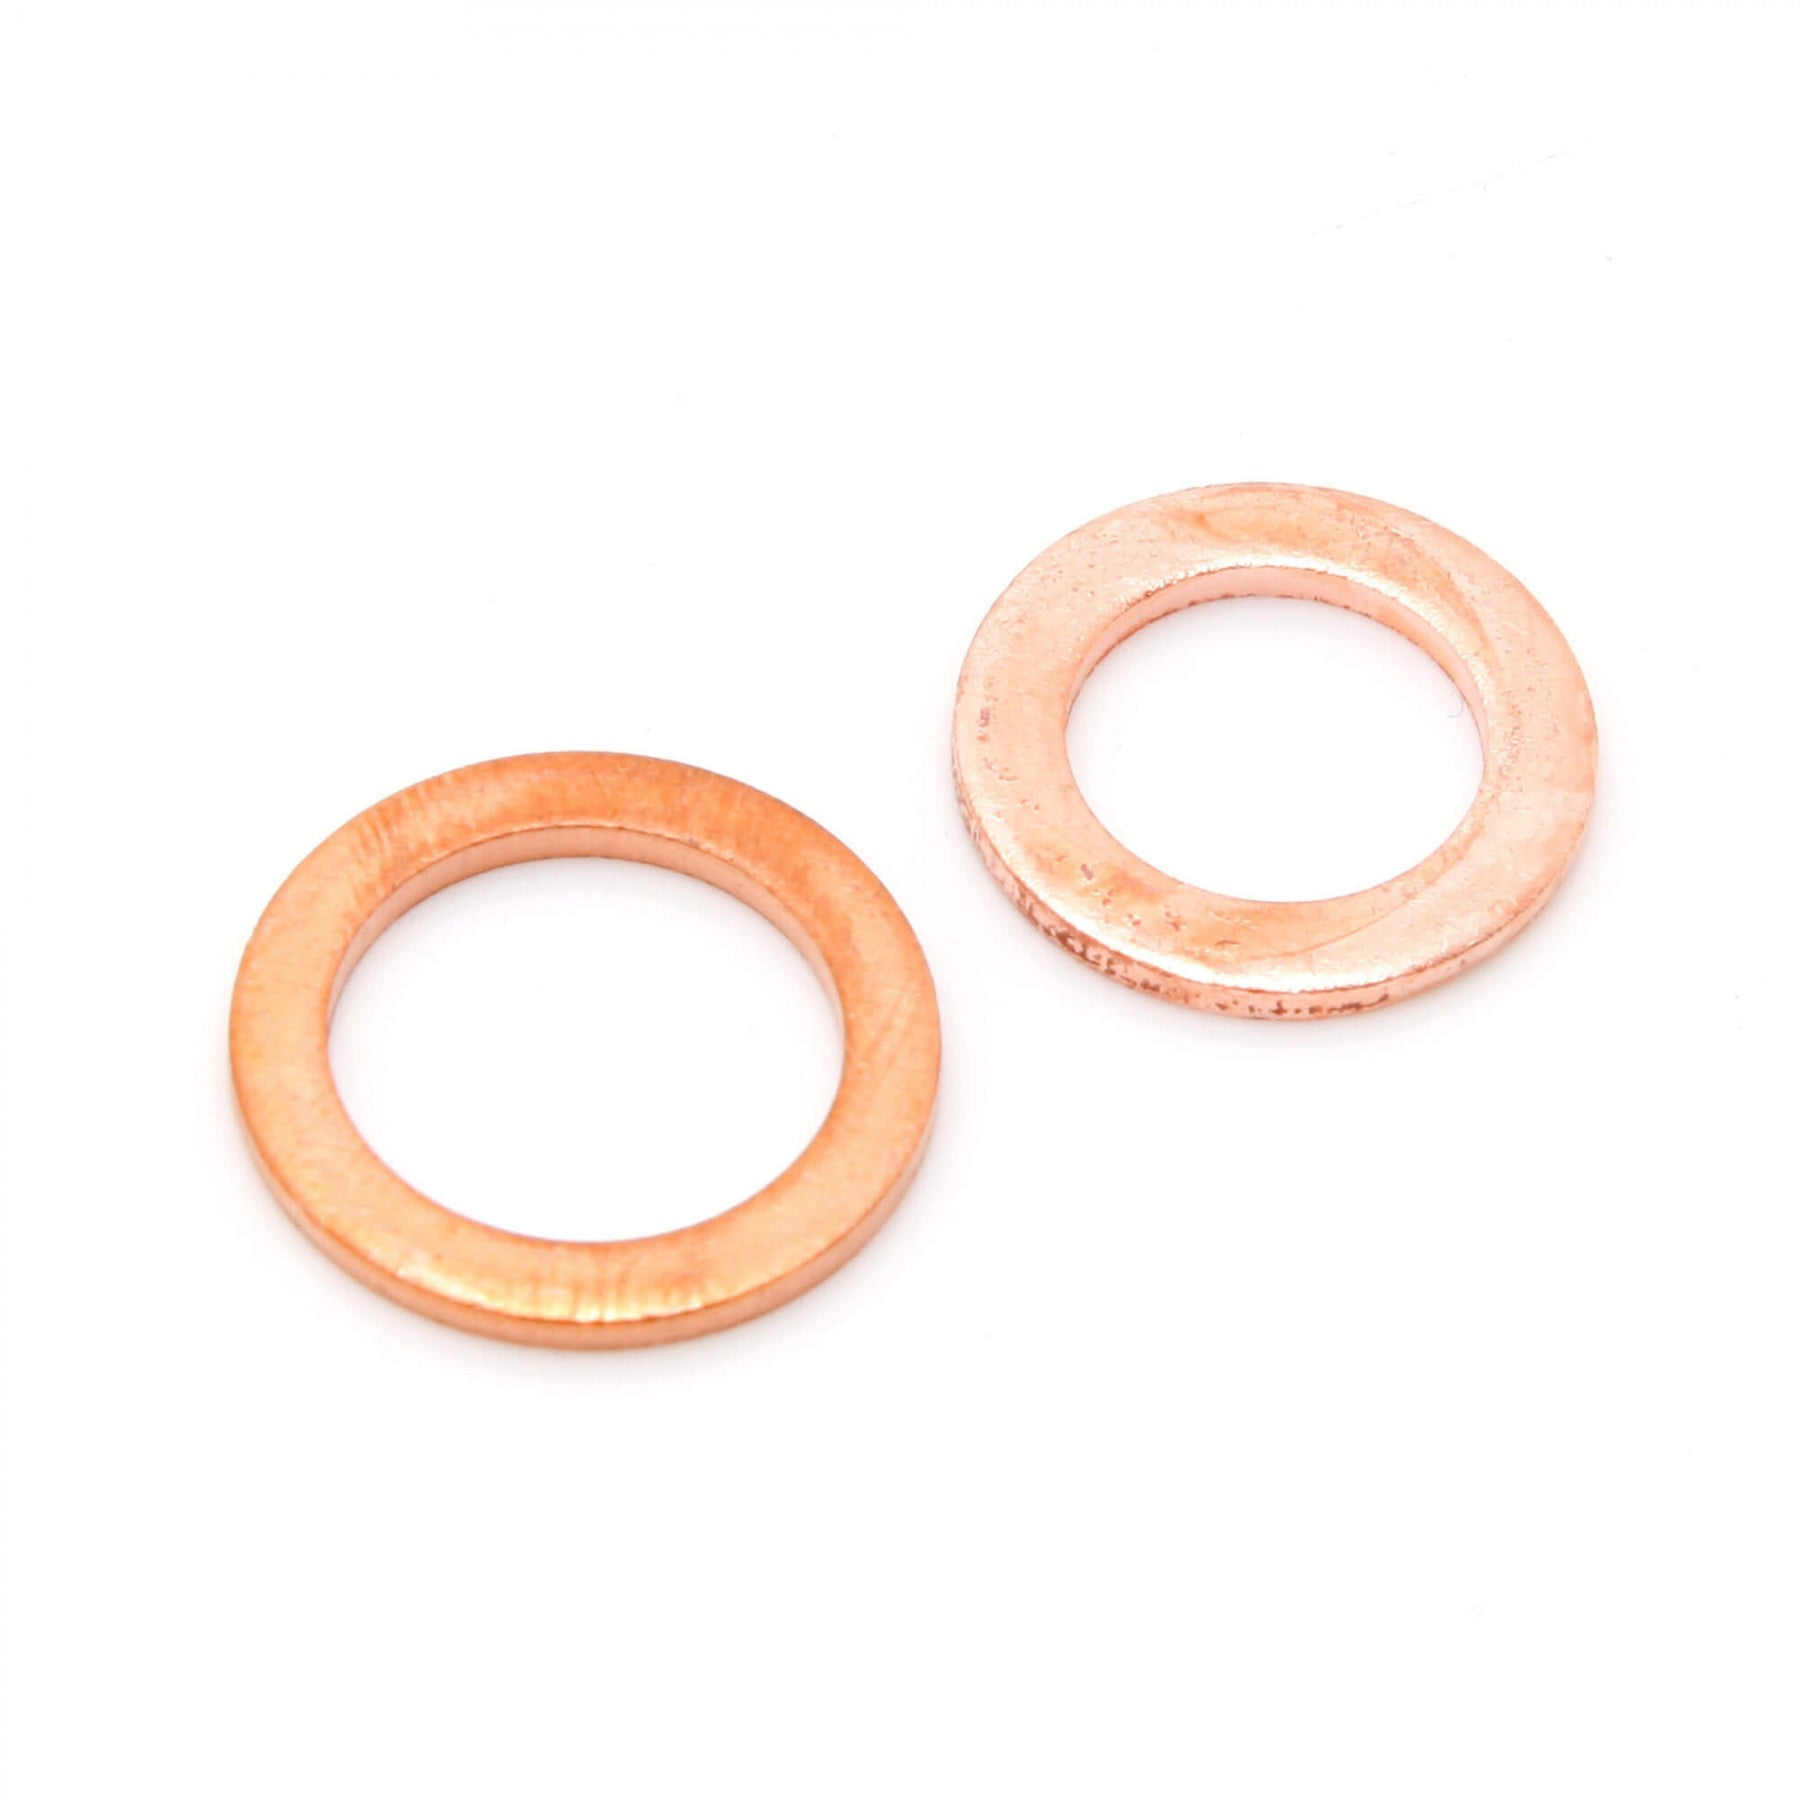 Copper banjo washers